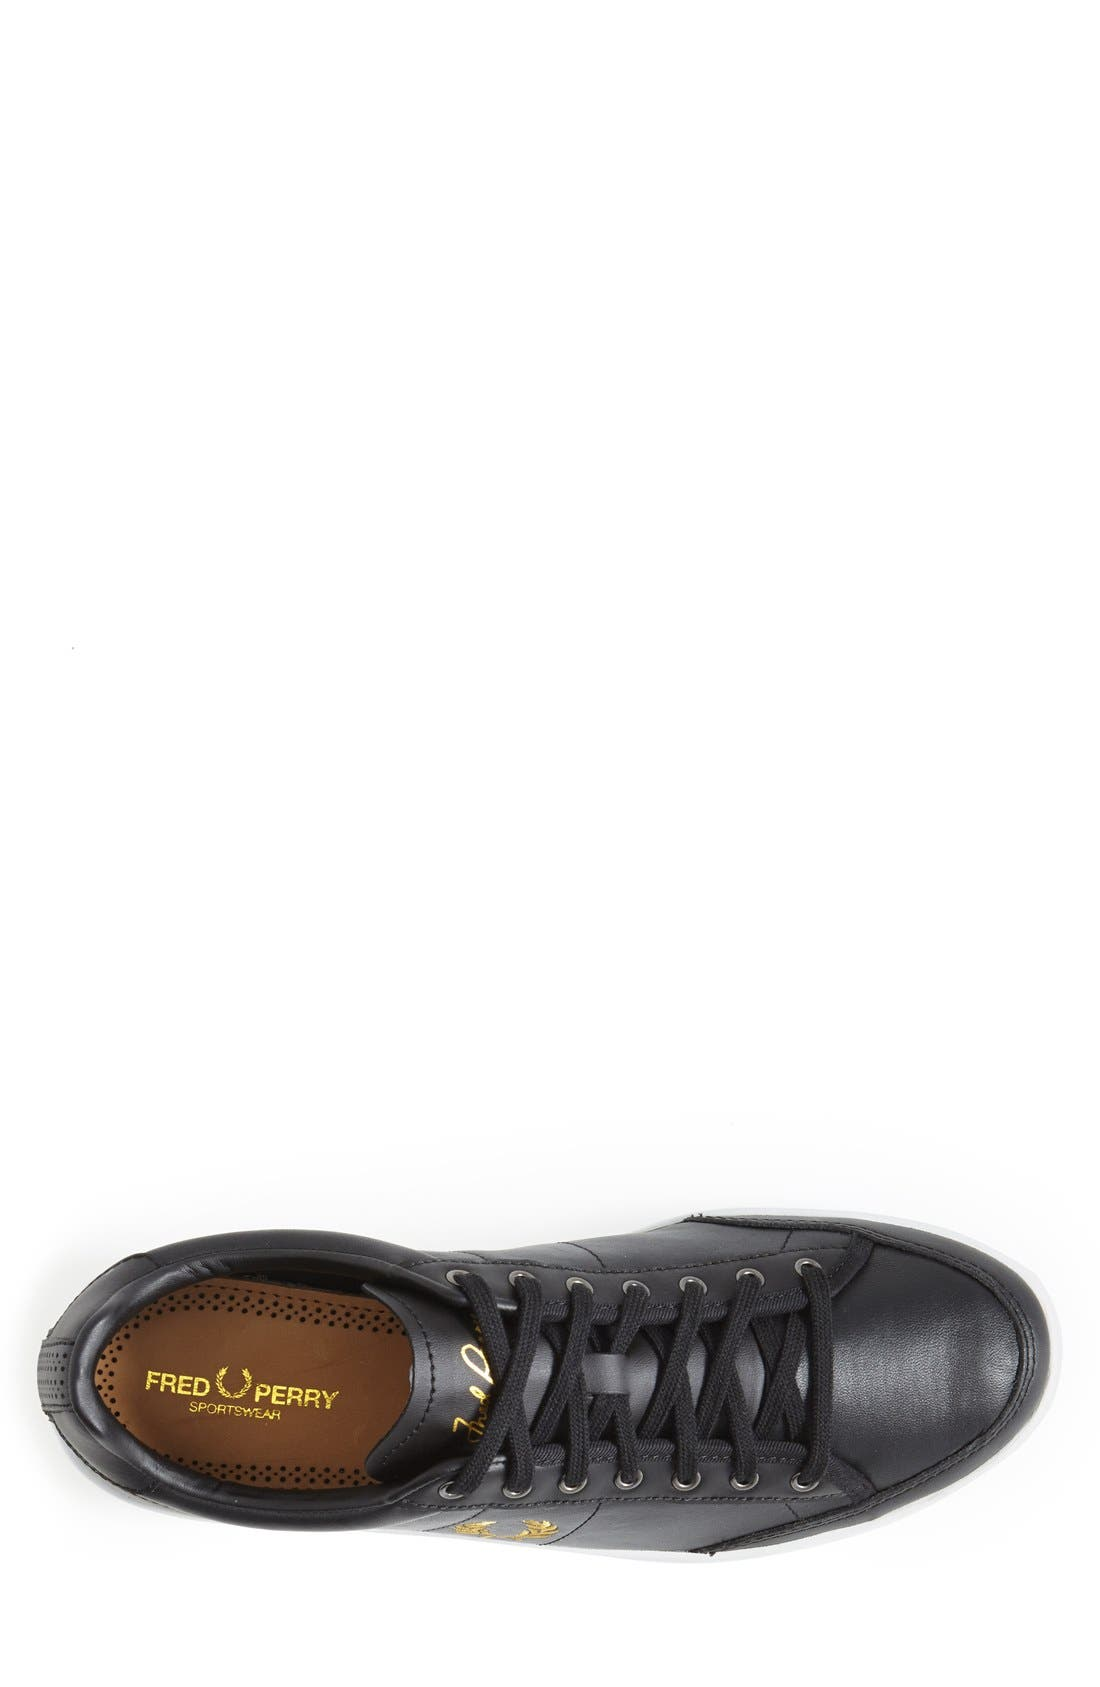 FRED PERRY,                             'Hopman' Sneaker,                             Alternate thumbnail 3, color,                             001